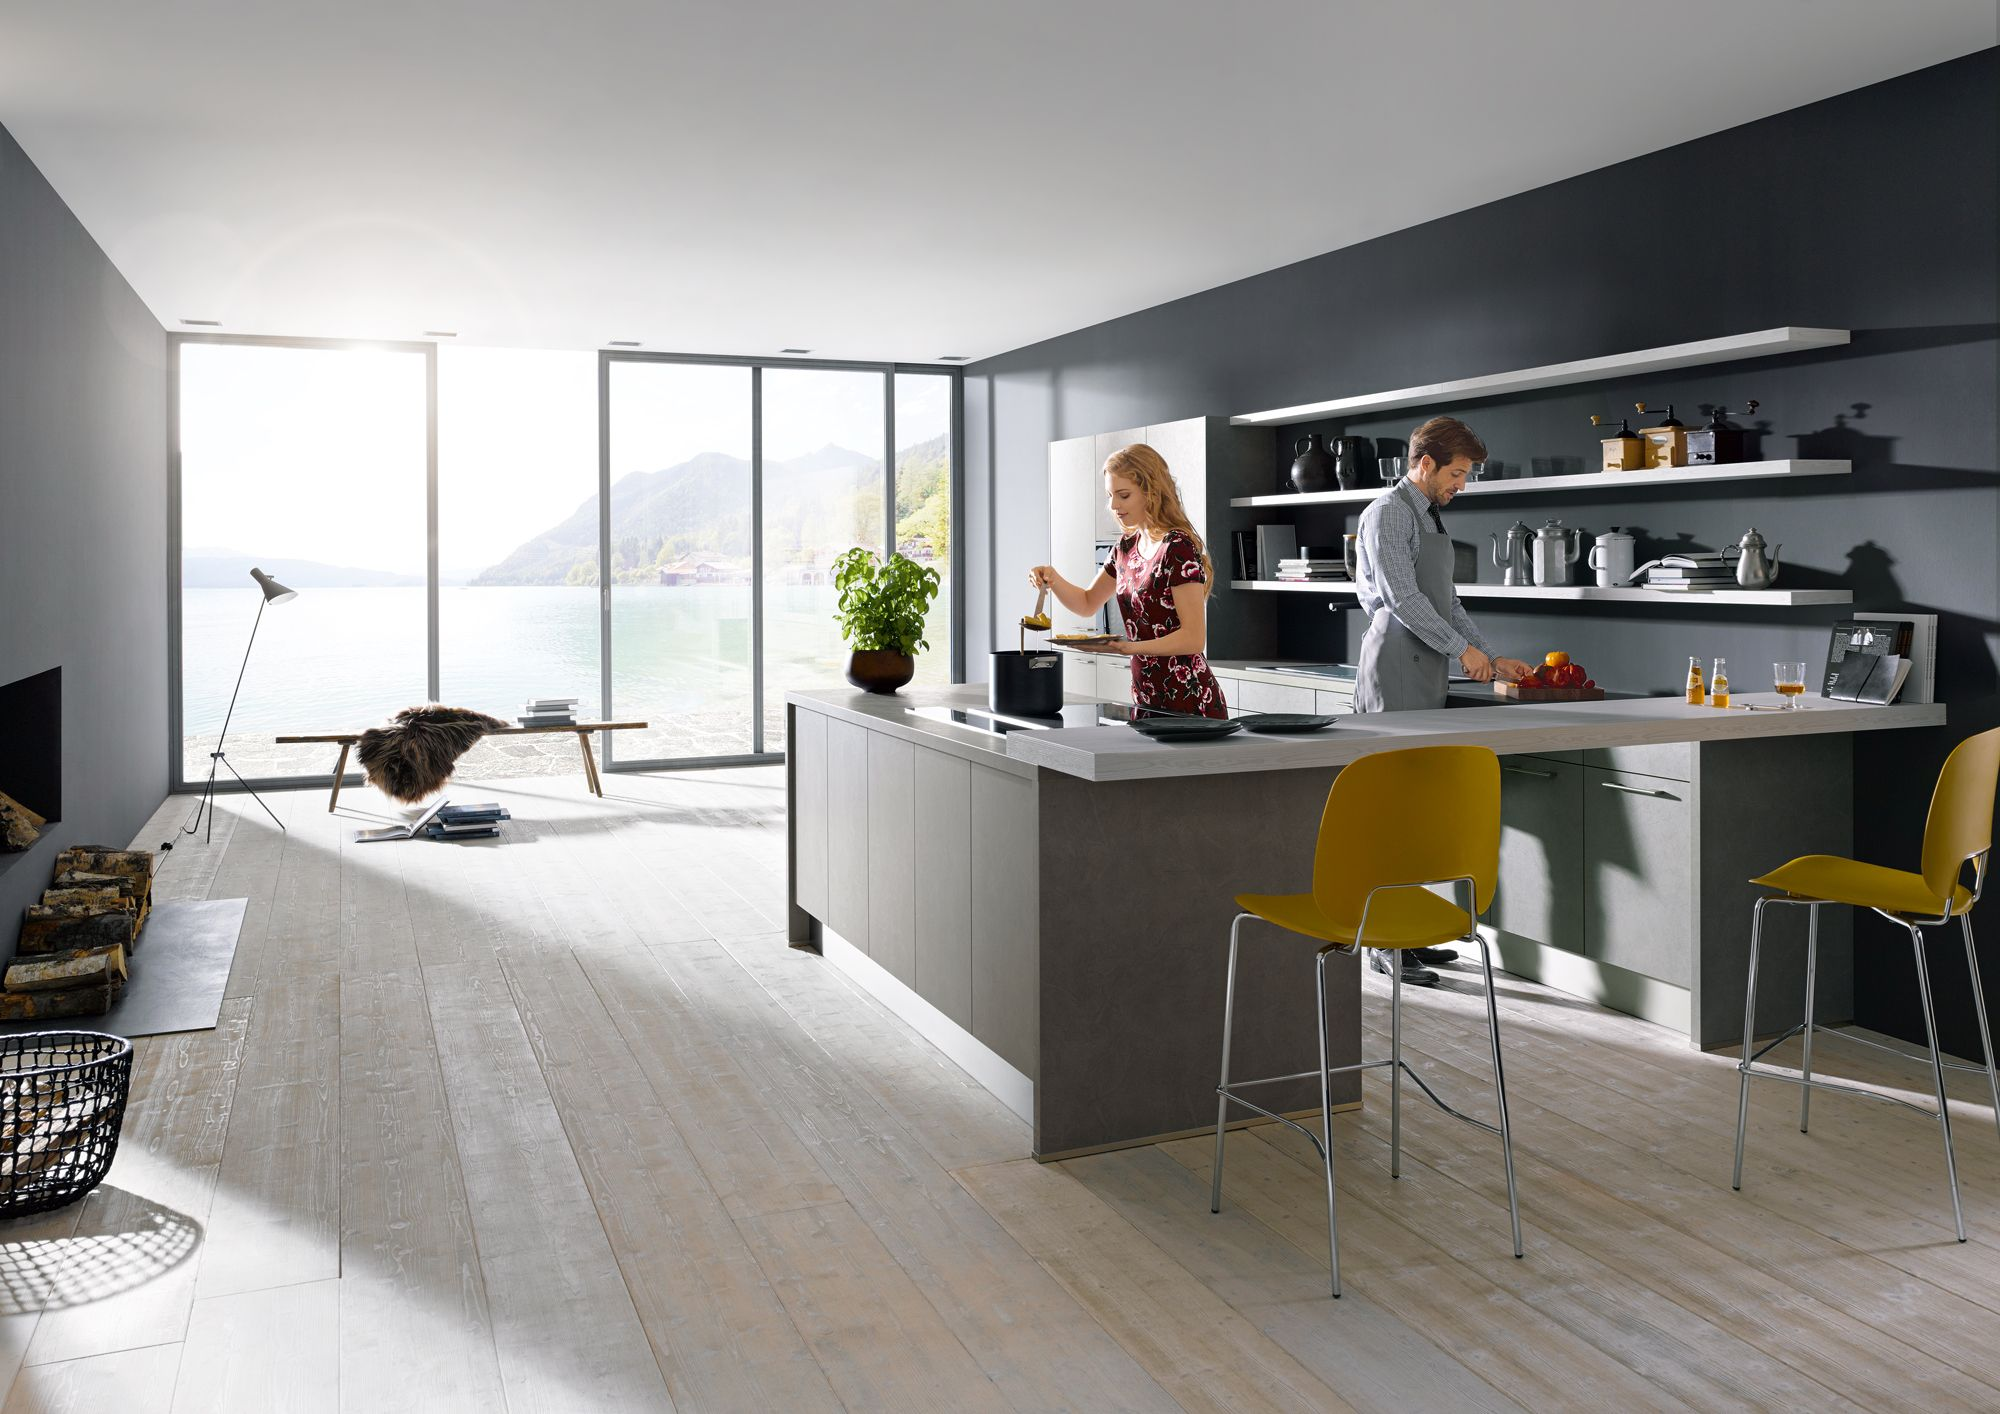 A Concrete Dark Grey Imitation Kitchen With An Island, Breakfast